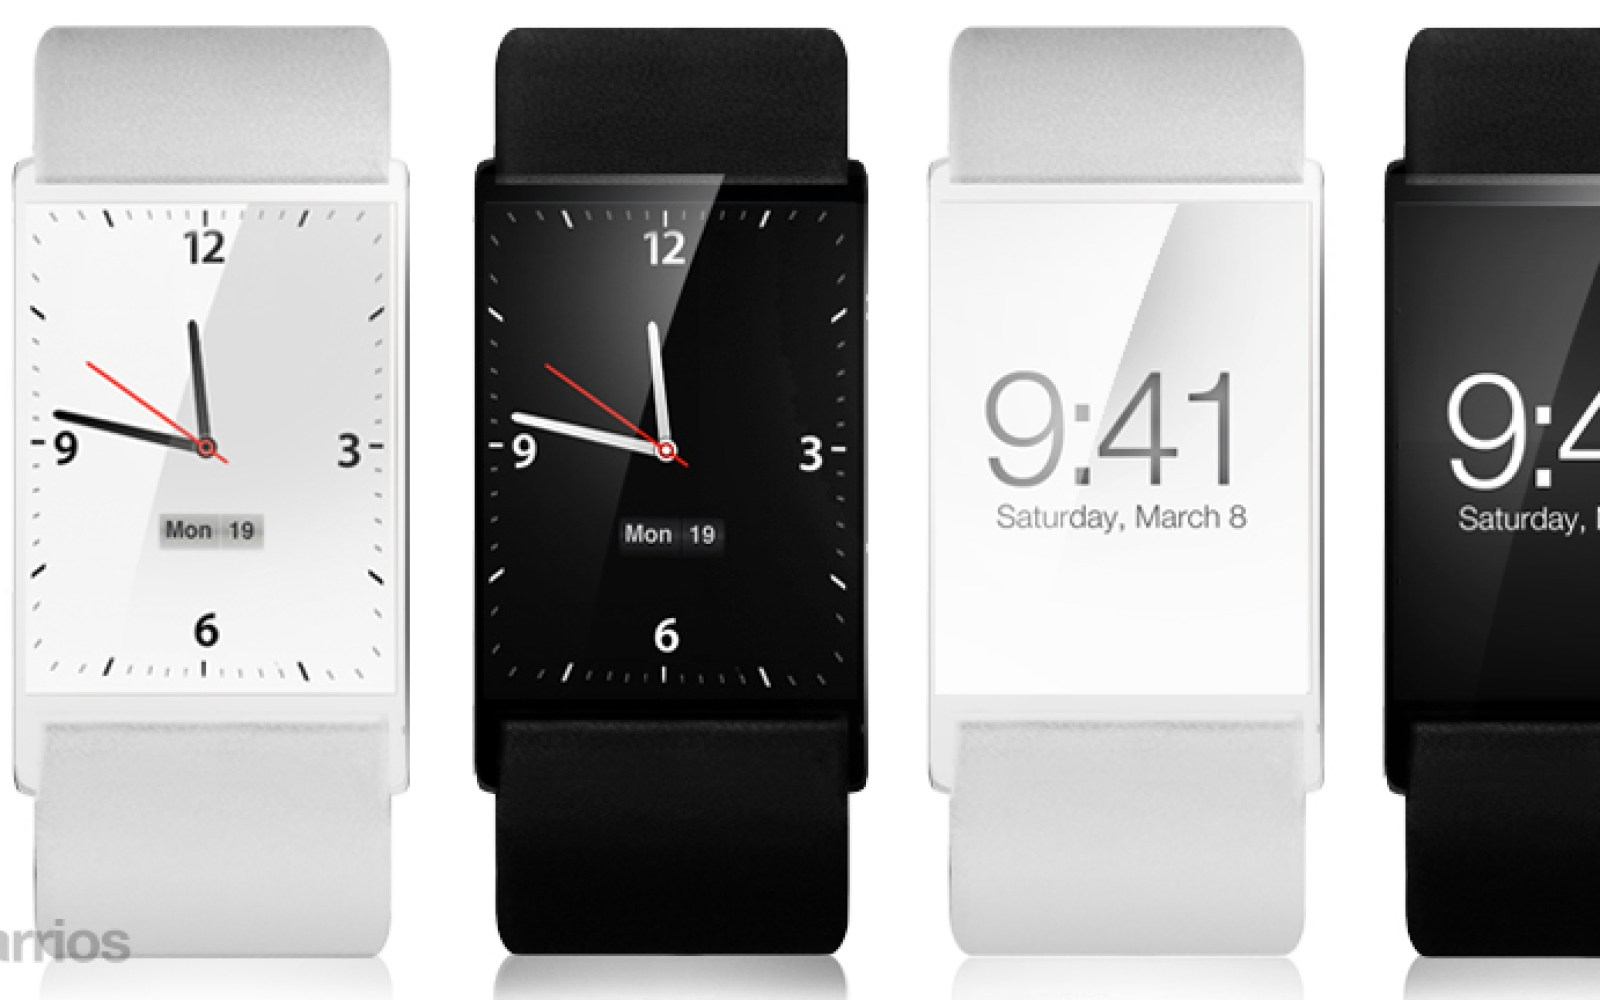 Russian newspaper claims Apple has applied for 'iWatch' trademark in the country